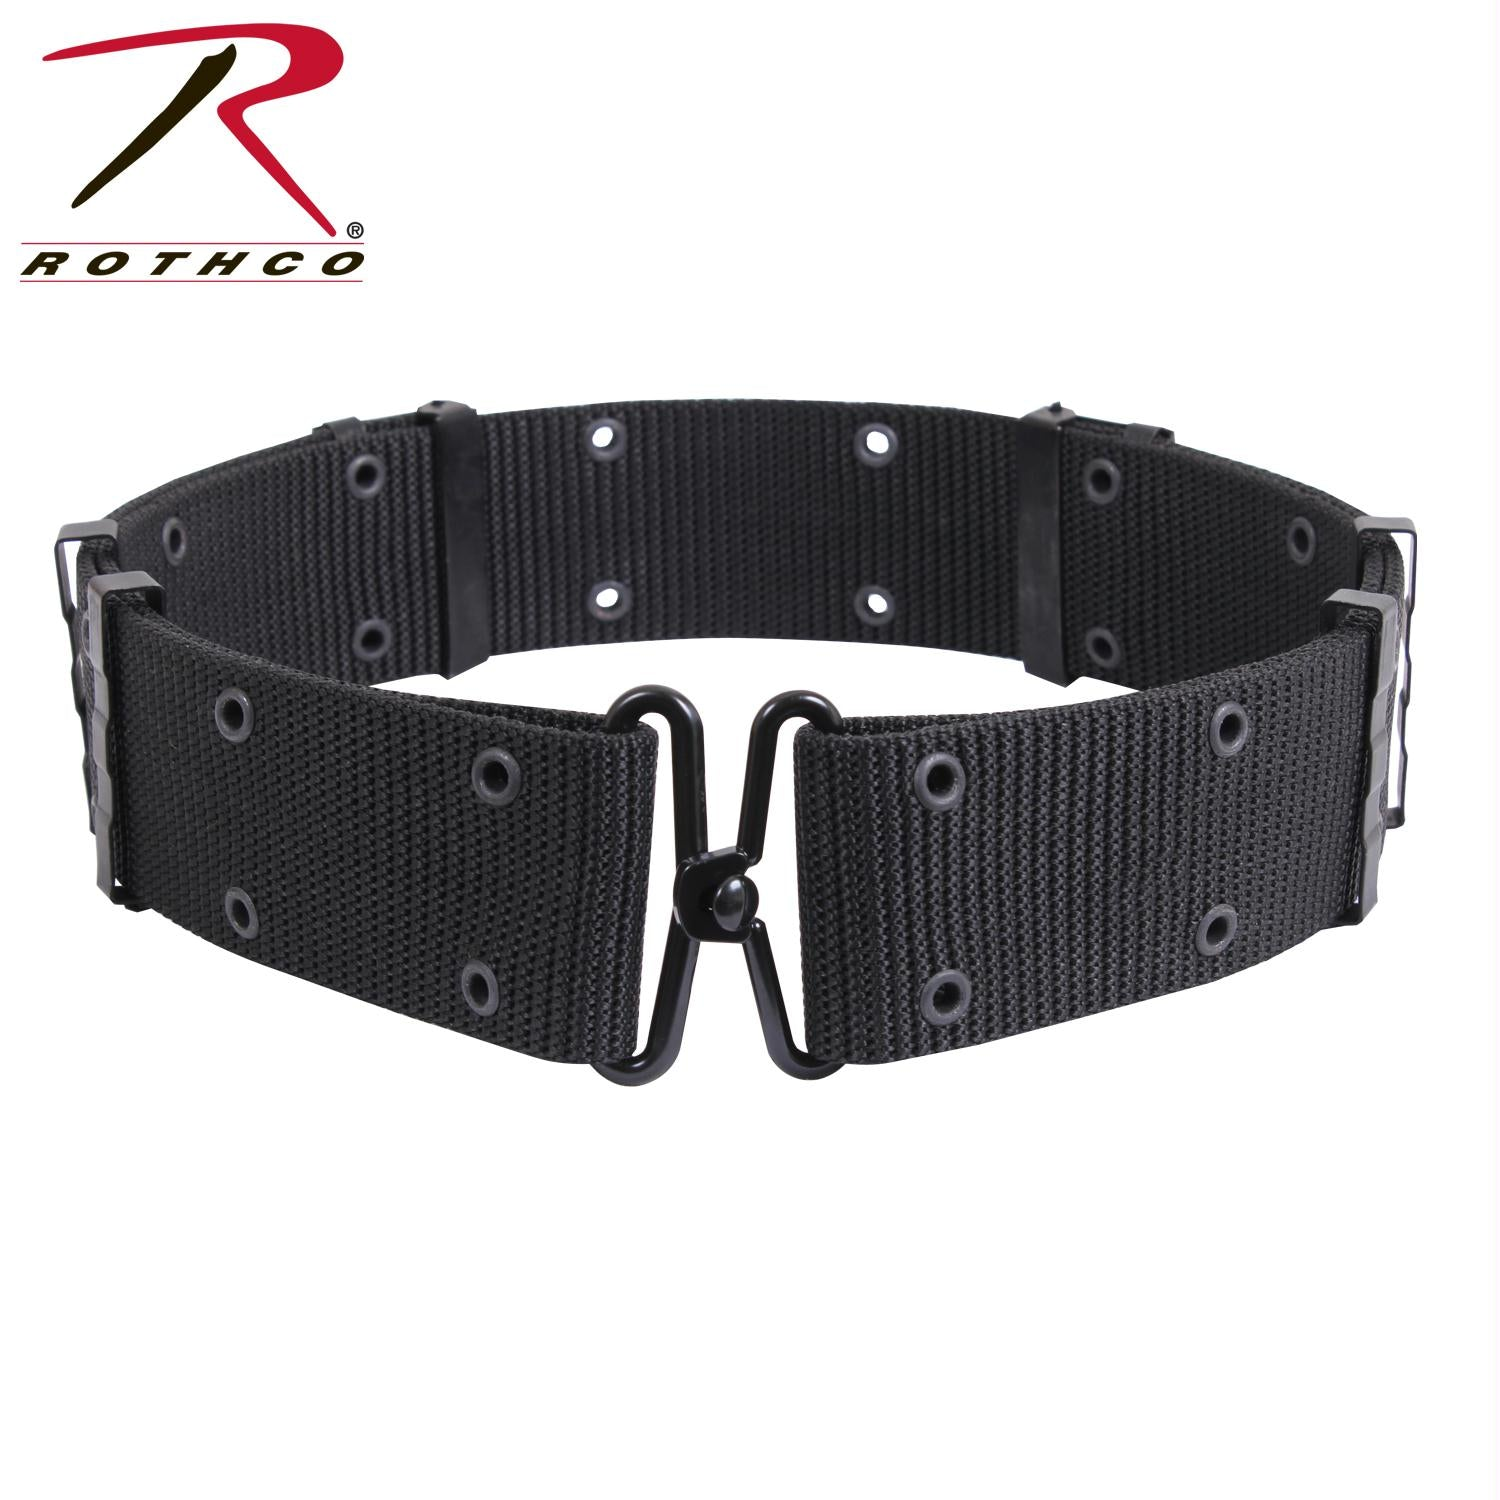 Rothco GI Style Pistol Belt With Metal Buckles - Black / L